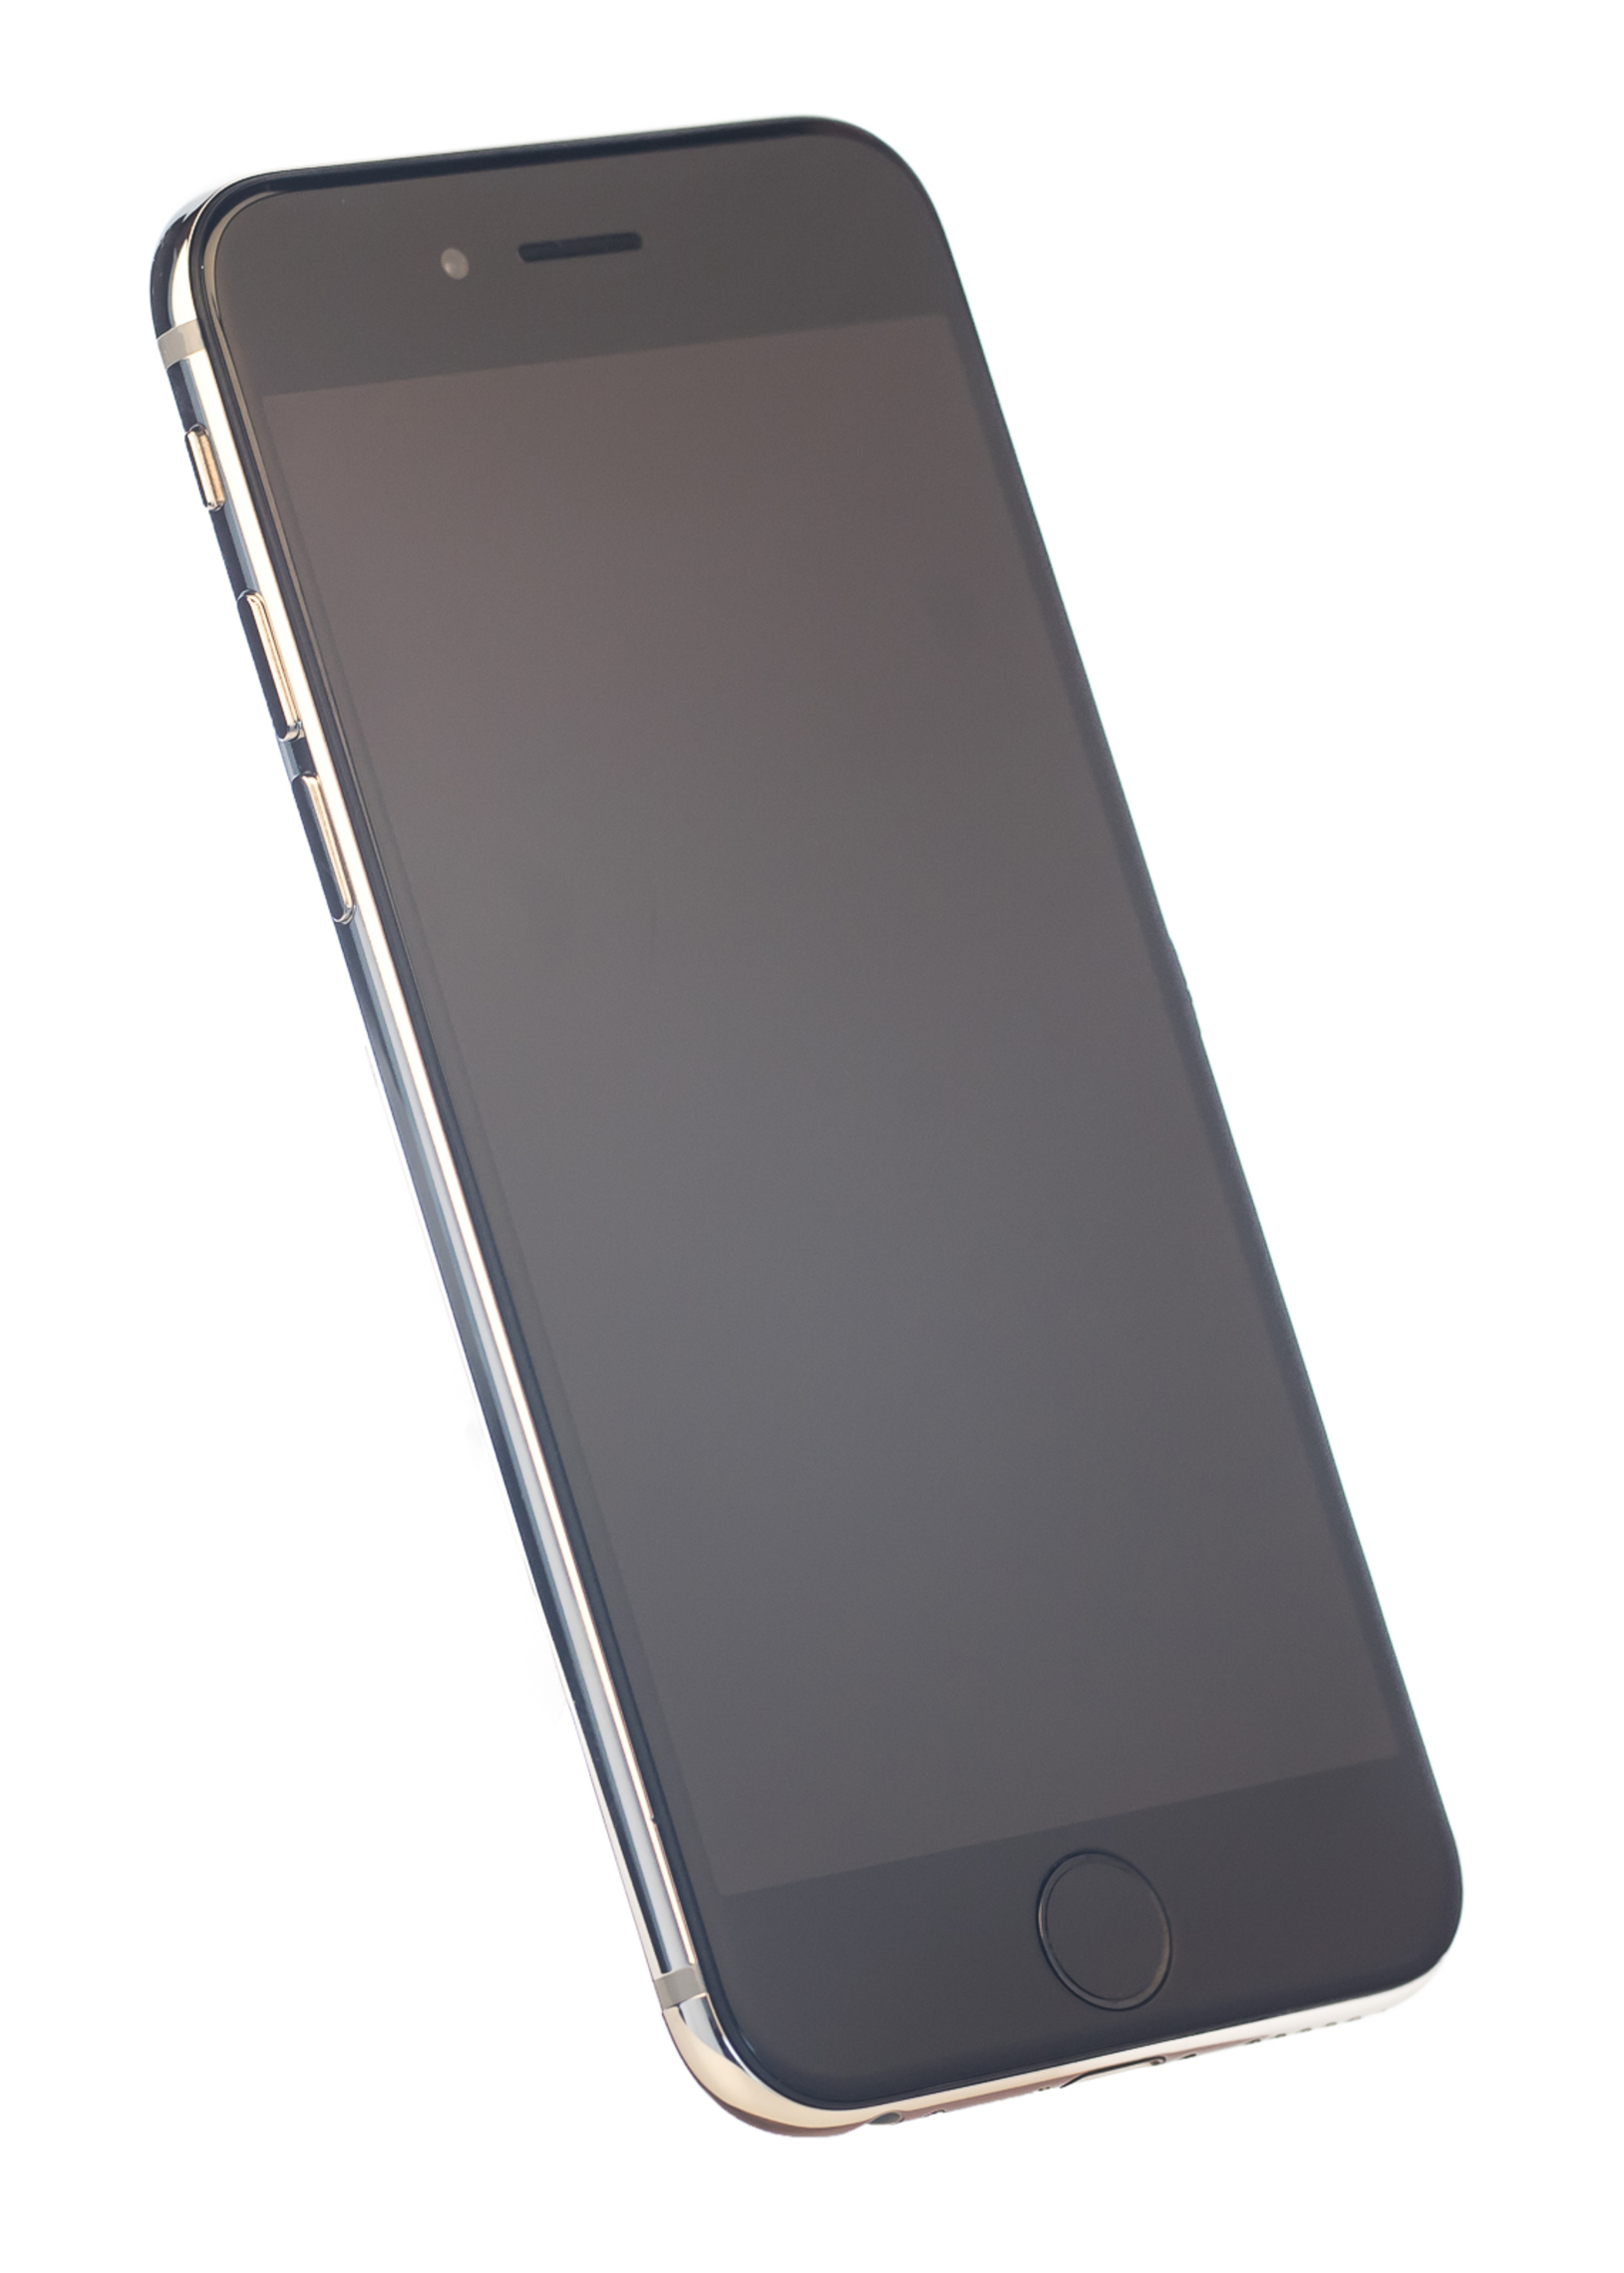 950 Platinum iPhone 6s Plus (By Julian Monroe London)